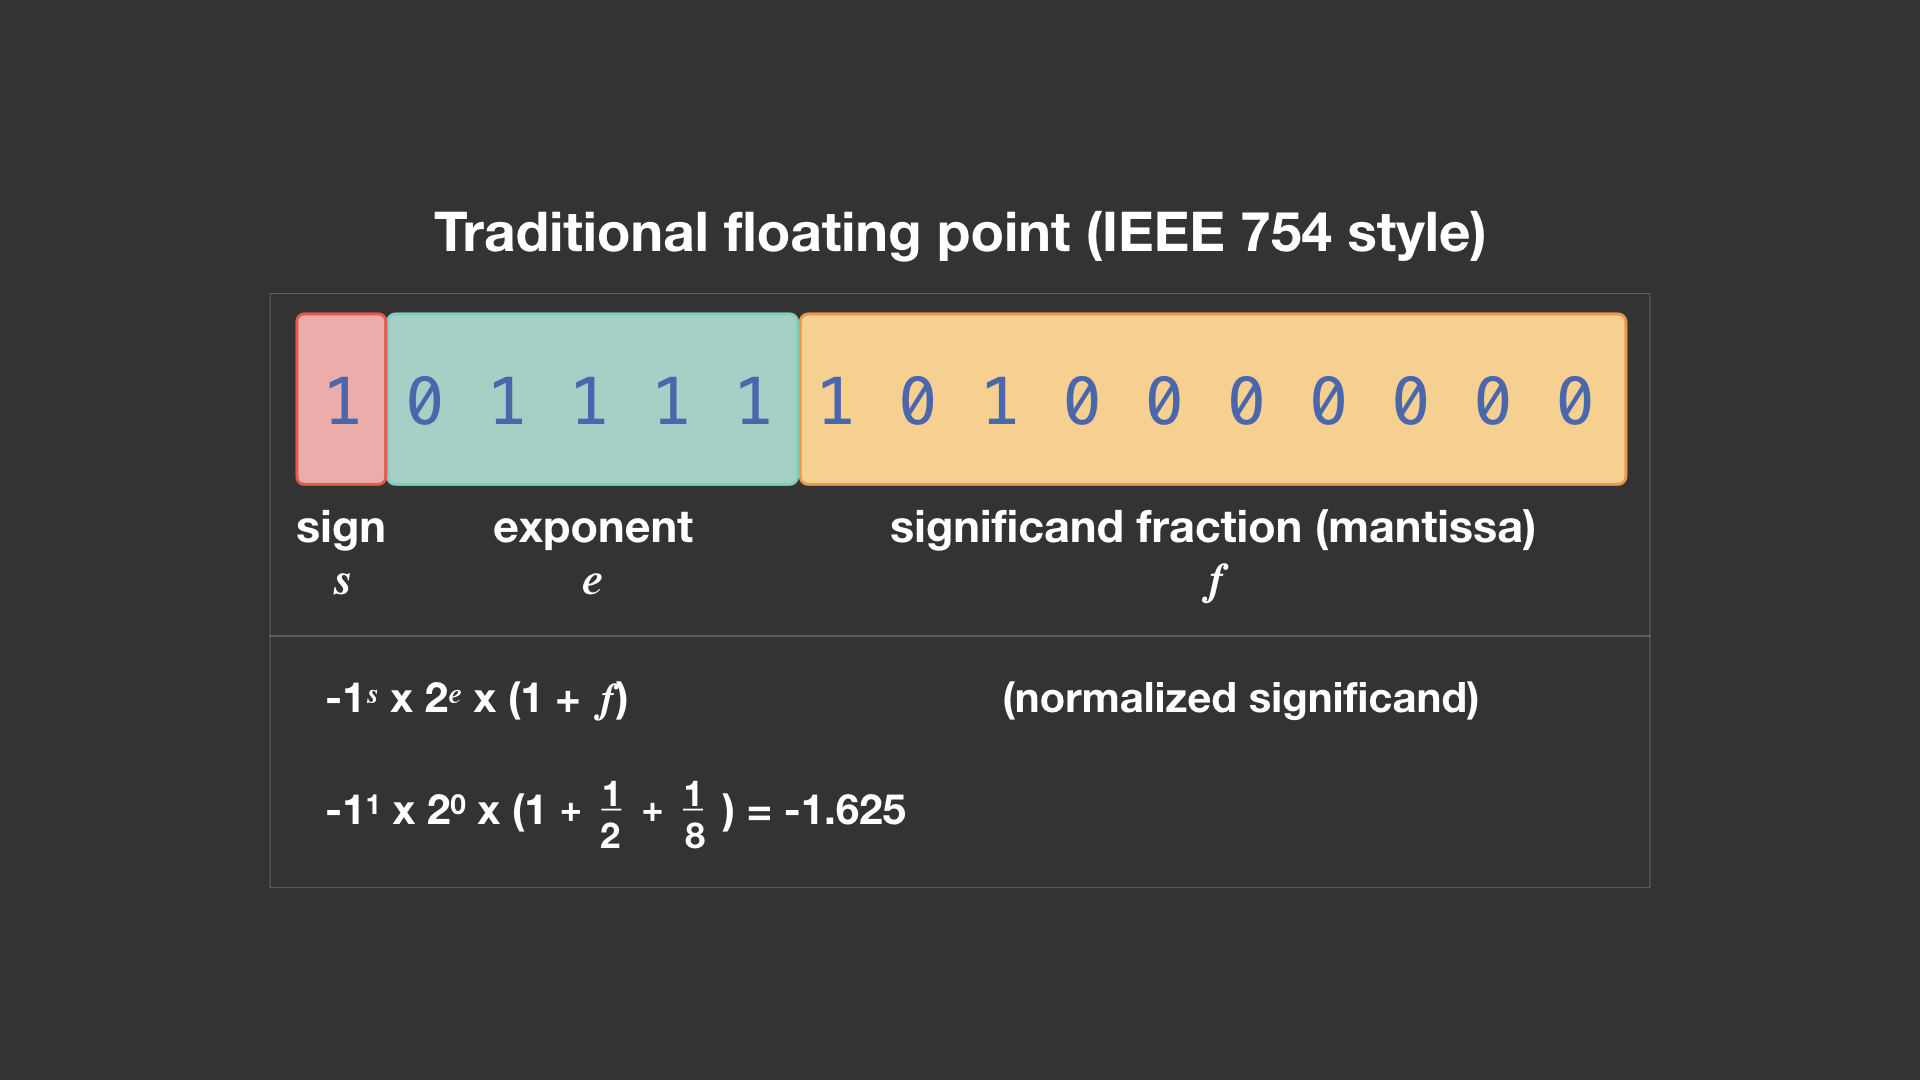 An encoding of -1.625 in 16-bit IEEE 754 binary16 half-precision floating point, with a fixed-size, 5-bit exponent and 10-bit significand fraction. The IEEE exponent has a bias of -15 added to it, so the encoded exponent 15 below actually represents (15 - 15) or 0.